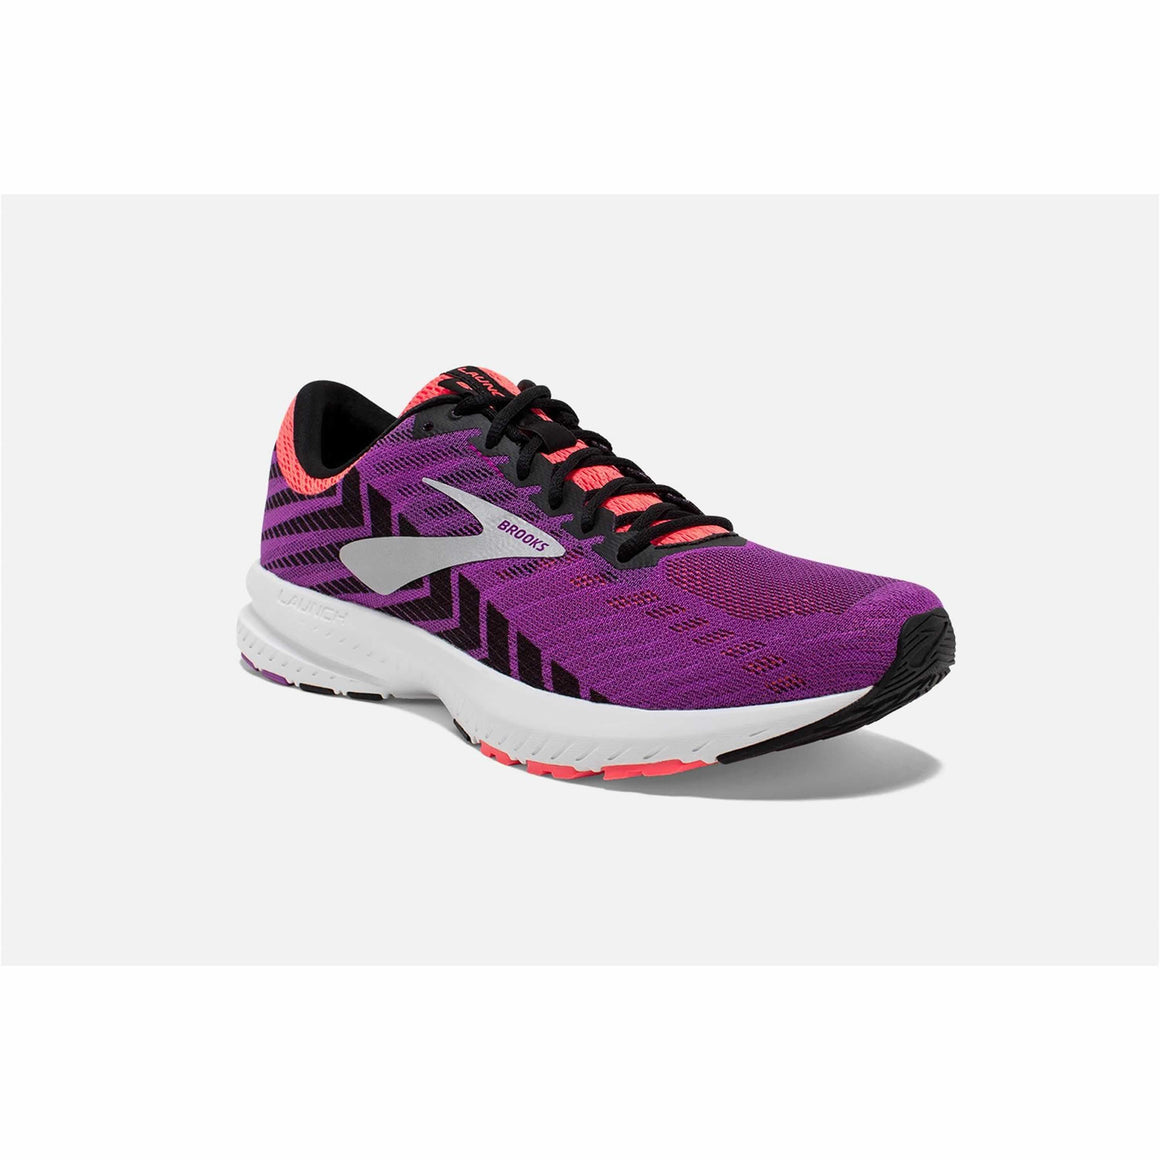 Launch 6 Road Running Shoes for Women in Colour 542